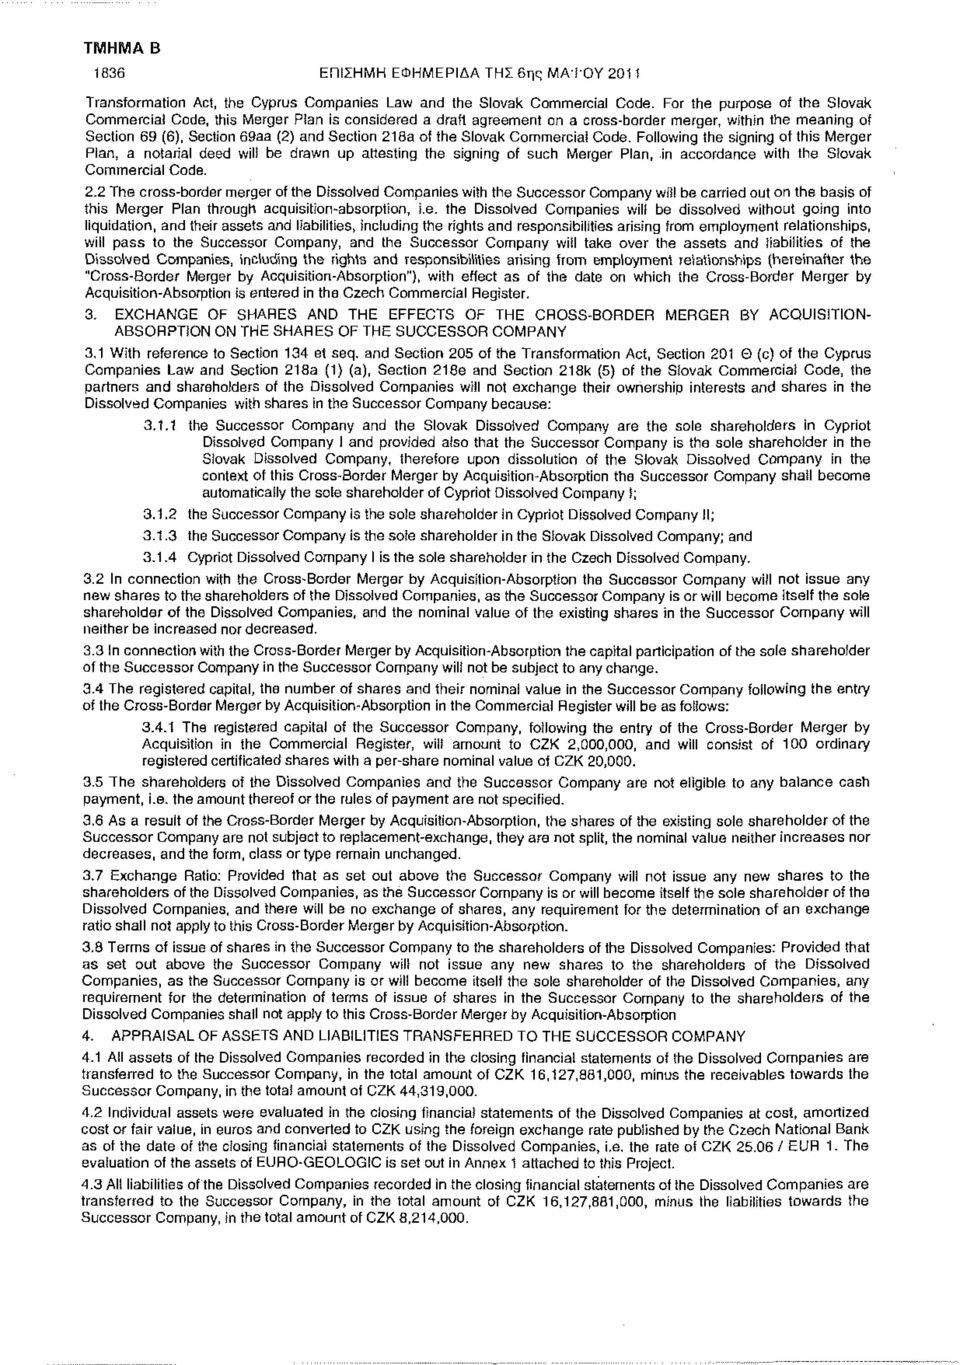 the Slovak Commercial Code. Following the signing of this Merger Pian, a notarial deed will be drawn up attesting the signing of such Merger Plan, in accordance with the Slovak Commercial Code. 2.